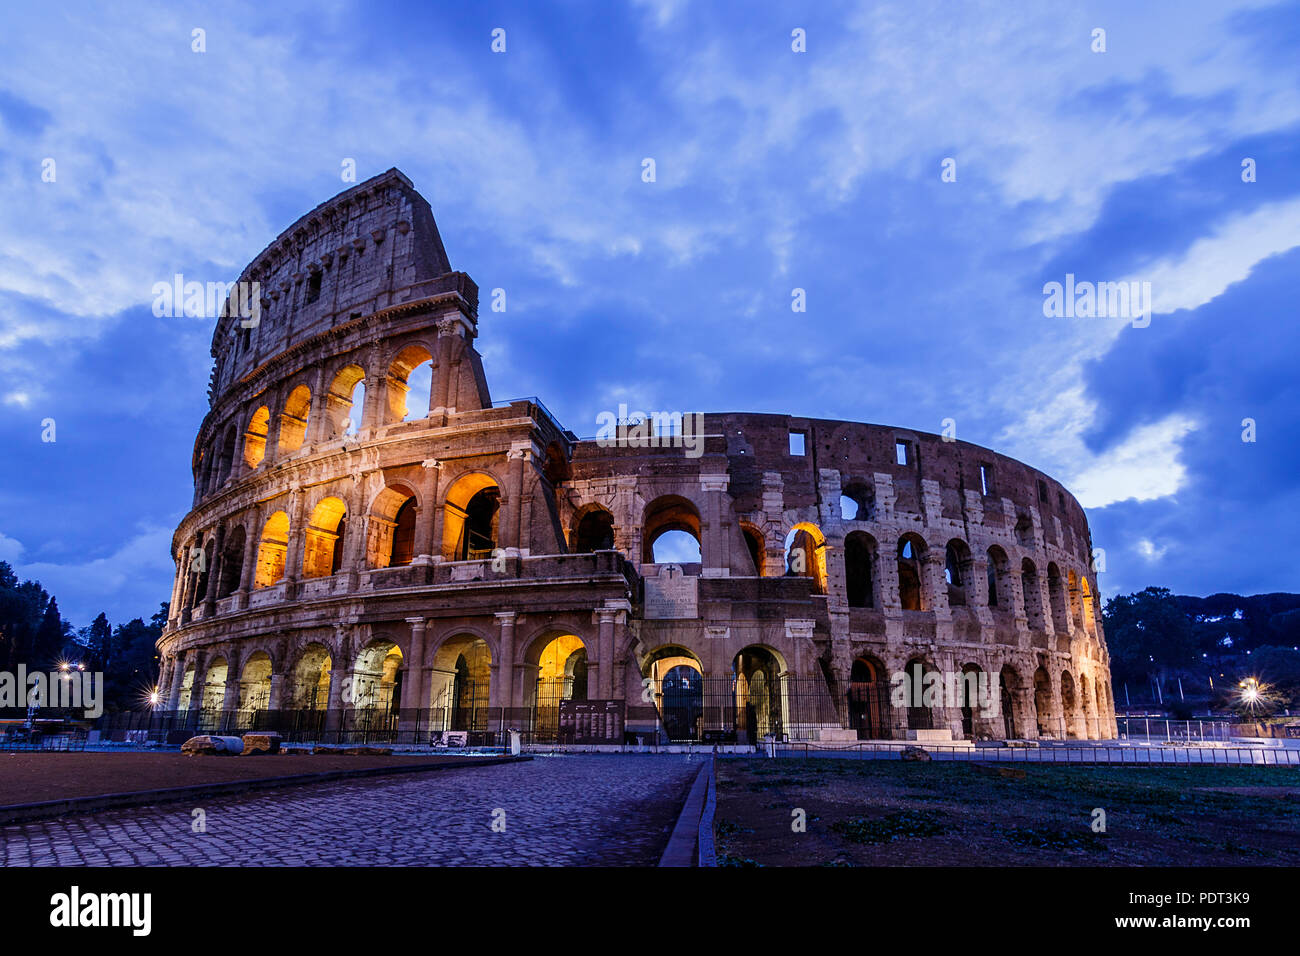 A view at the blue hour of the Colosseum, Ancient Roman Forum, UNESCO World Heritage Site, Rome, Italy. - Stock Image